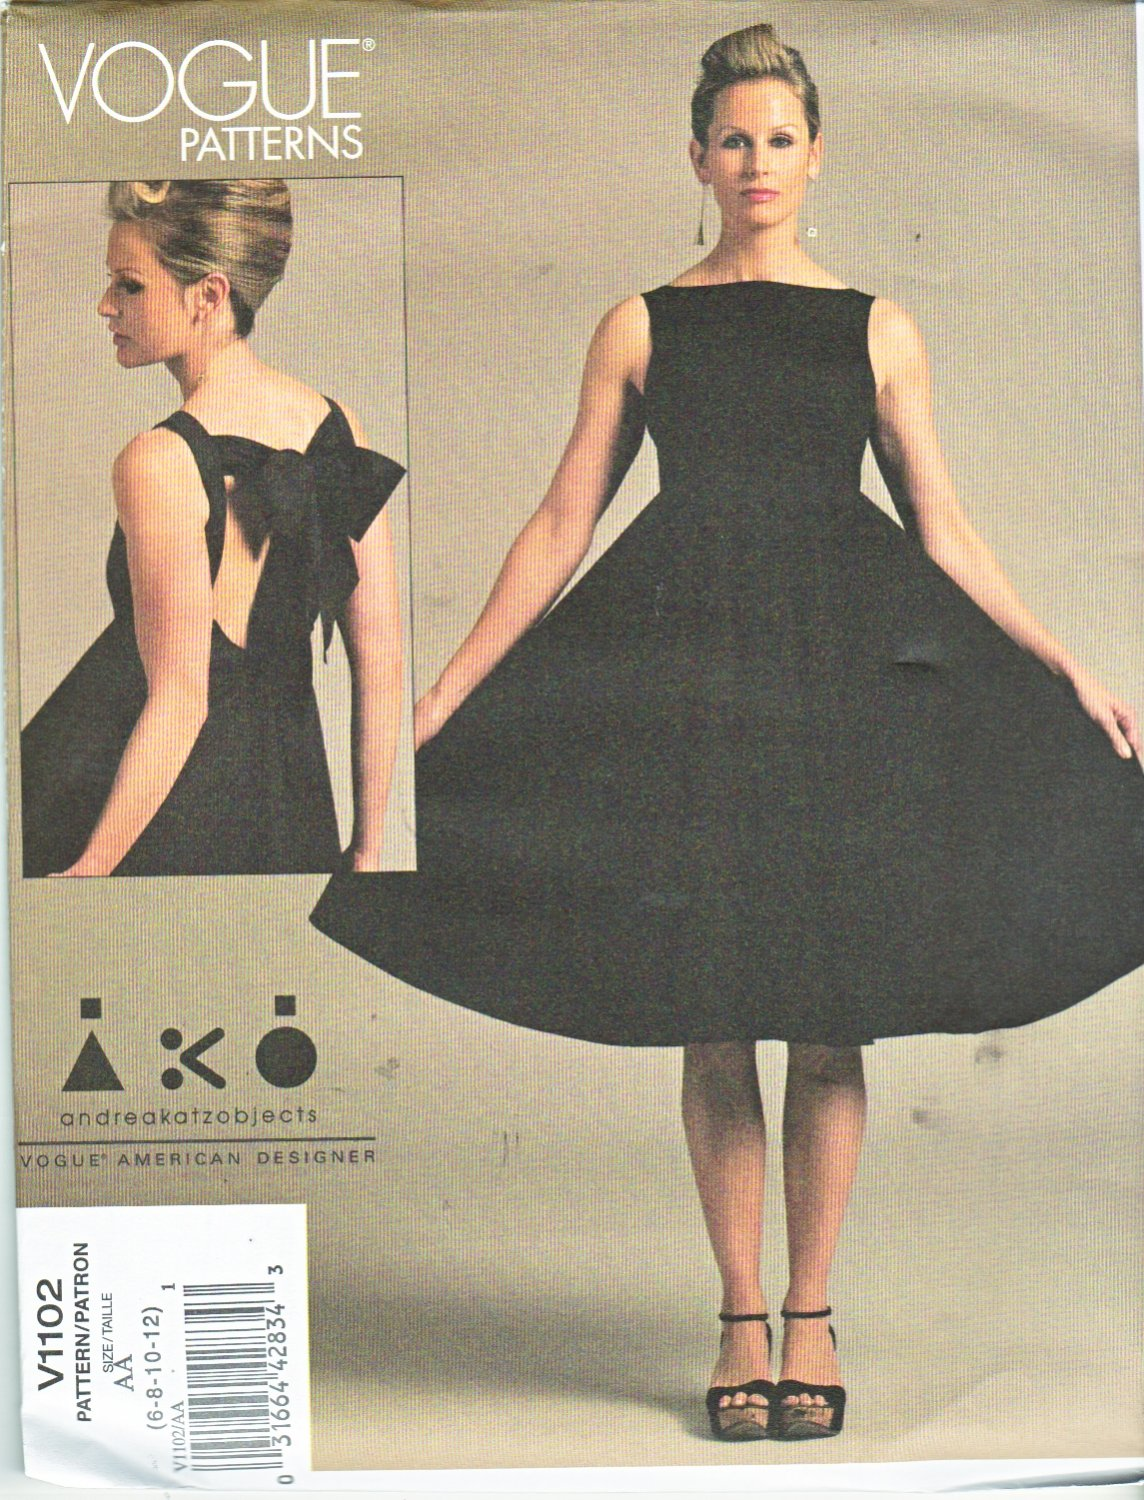 Vogue Sewing Pattern 1102 Misses Size 14-20 Easy Andrea Katz Objects Easy Sleeveless Dress